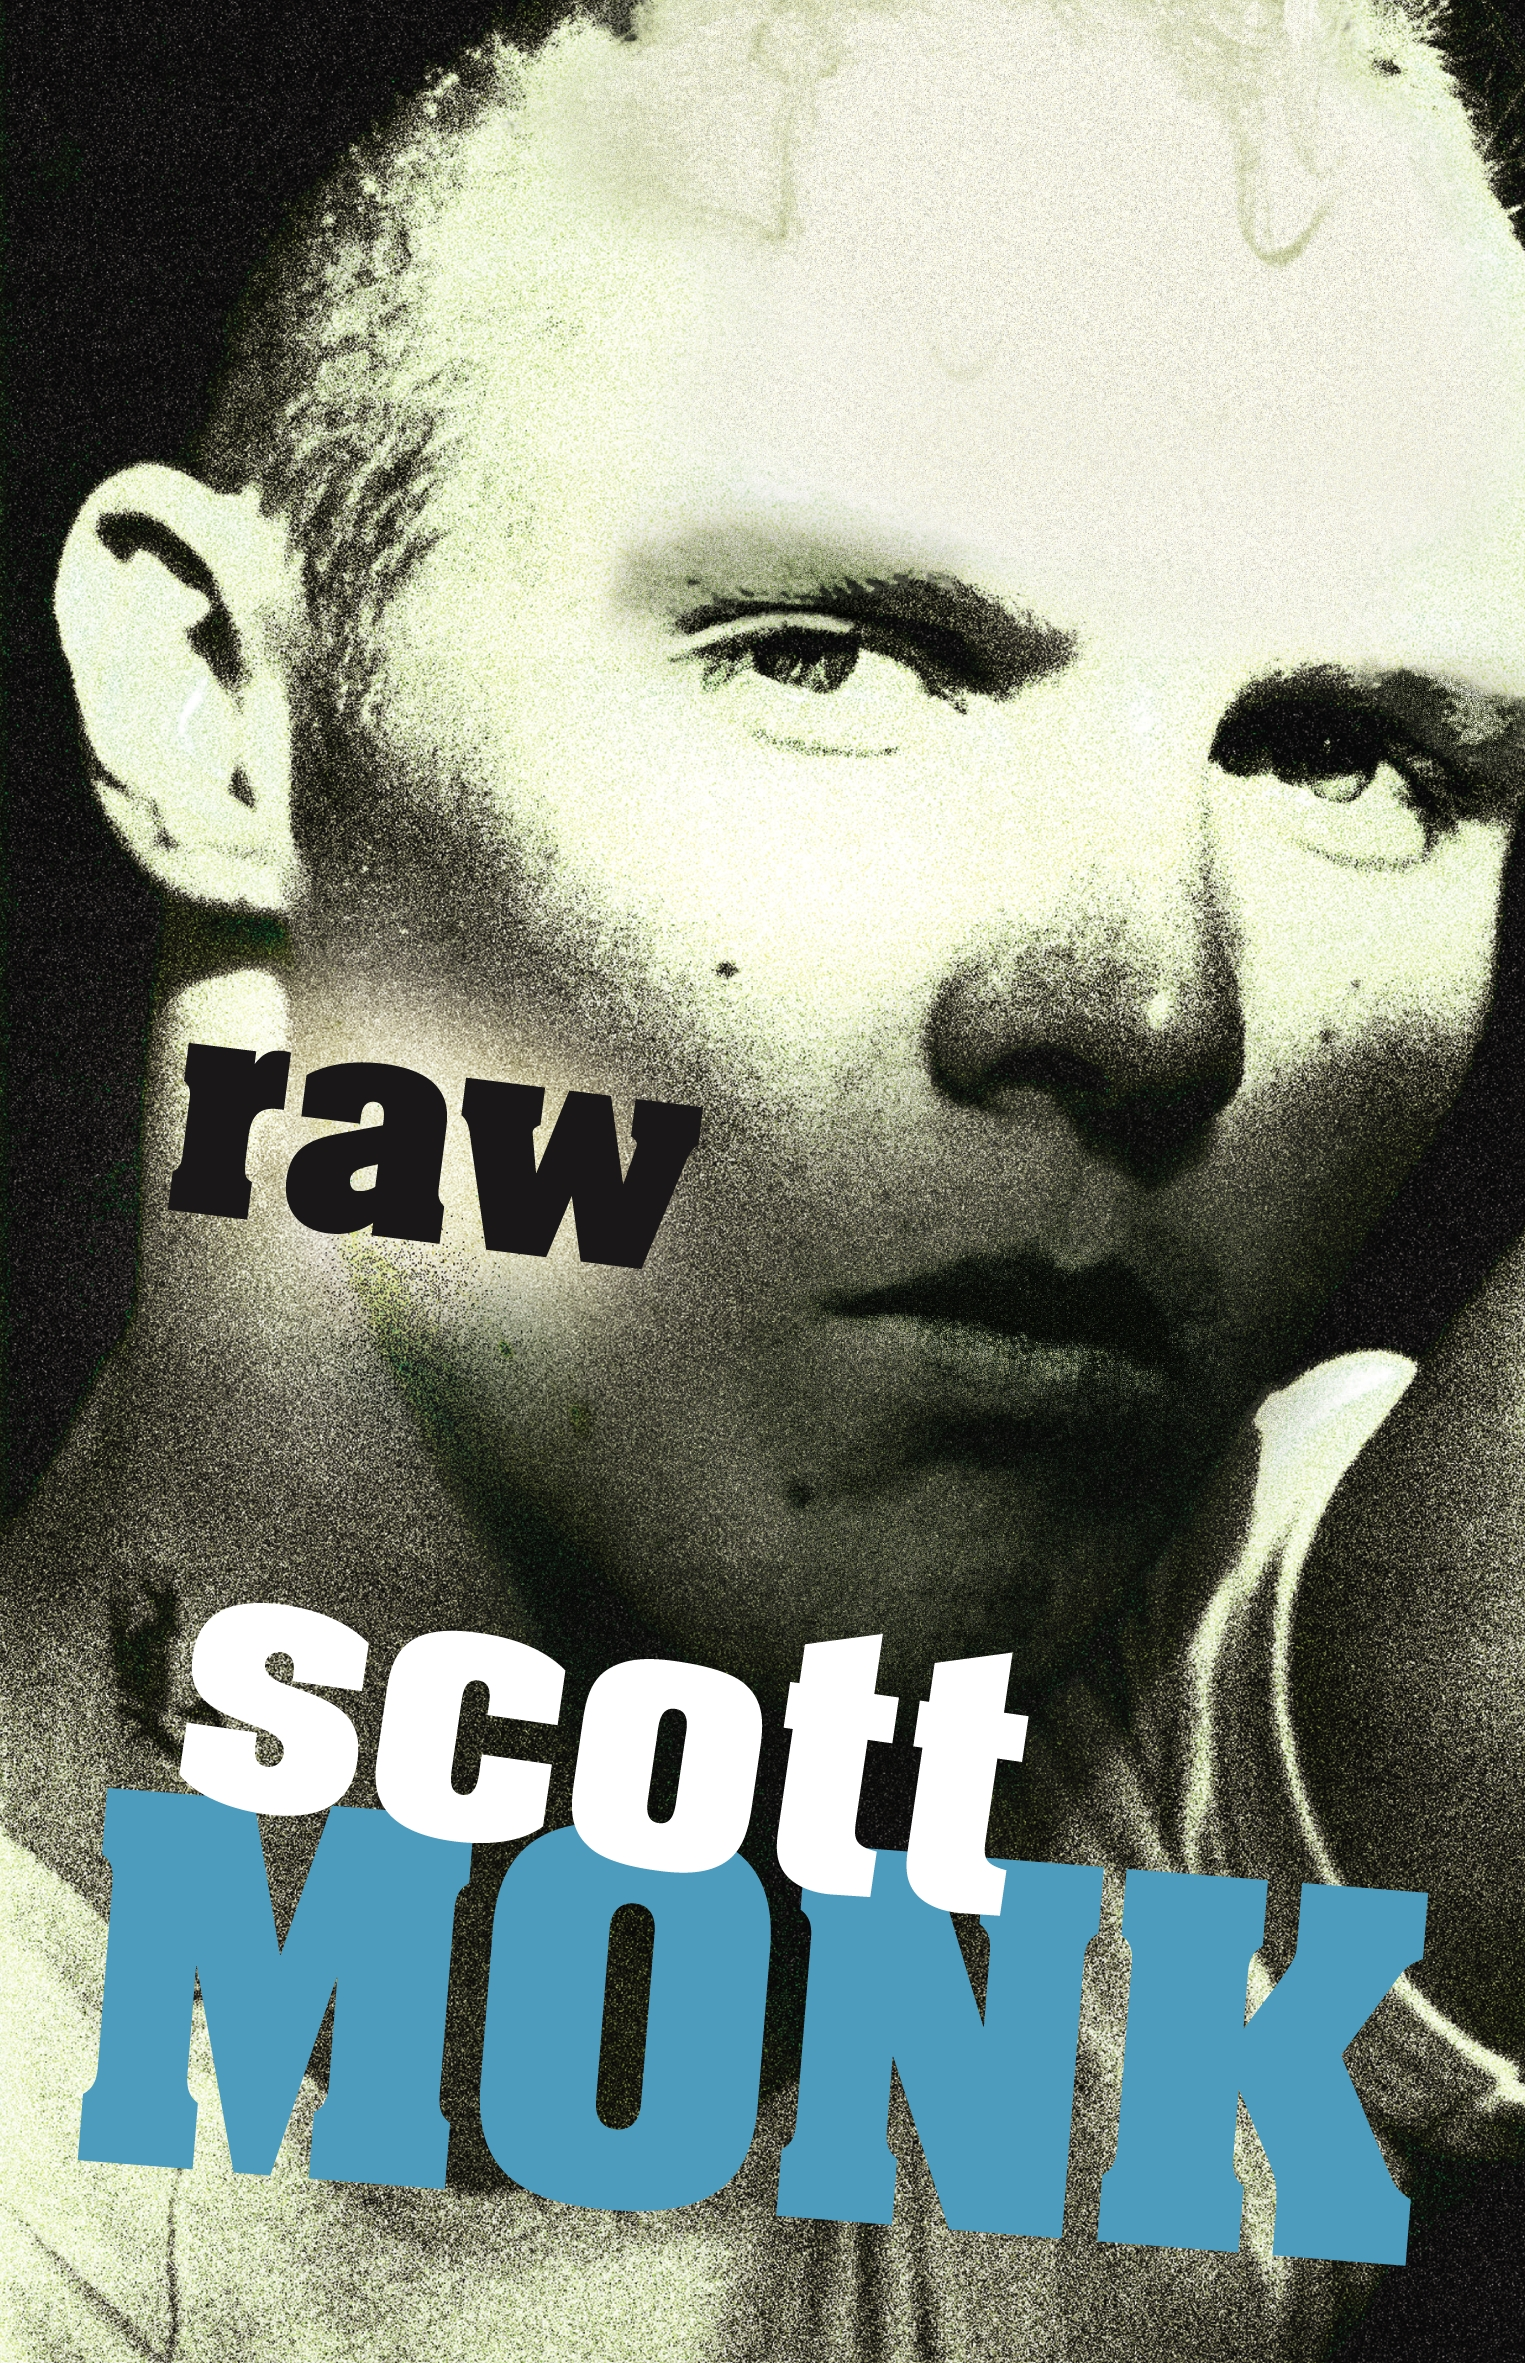 raw scott monk essay Monk conveys the excitement of the rodeo by the word choice he uses and conveys through out the part of that chapter at the rodeo also how the group break up and half go missing and it all becomes suspense were brett gets into the fight.